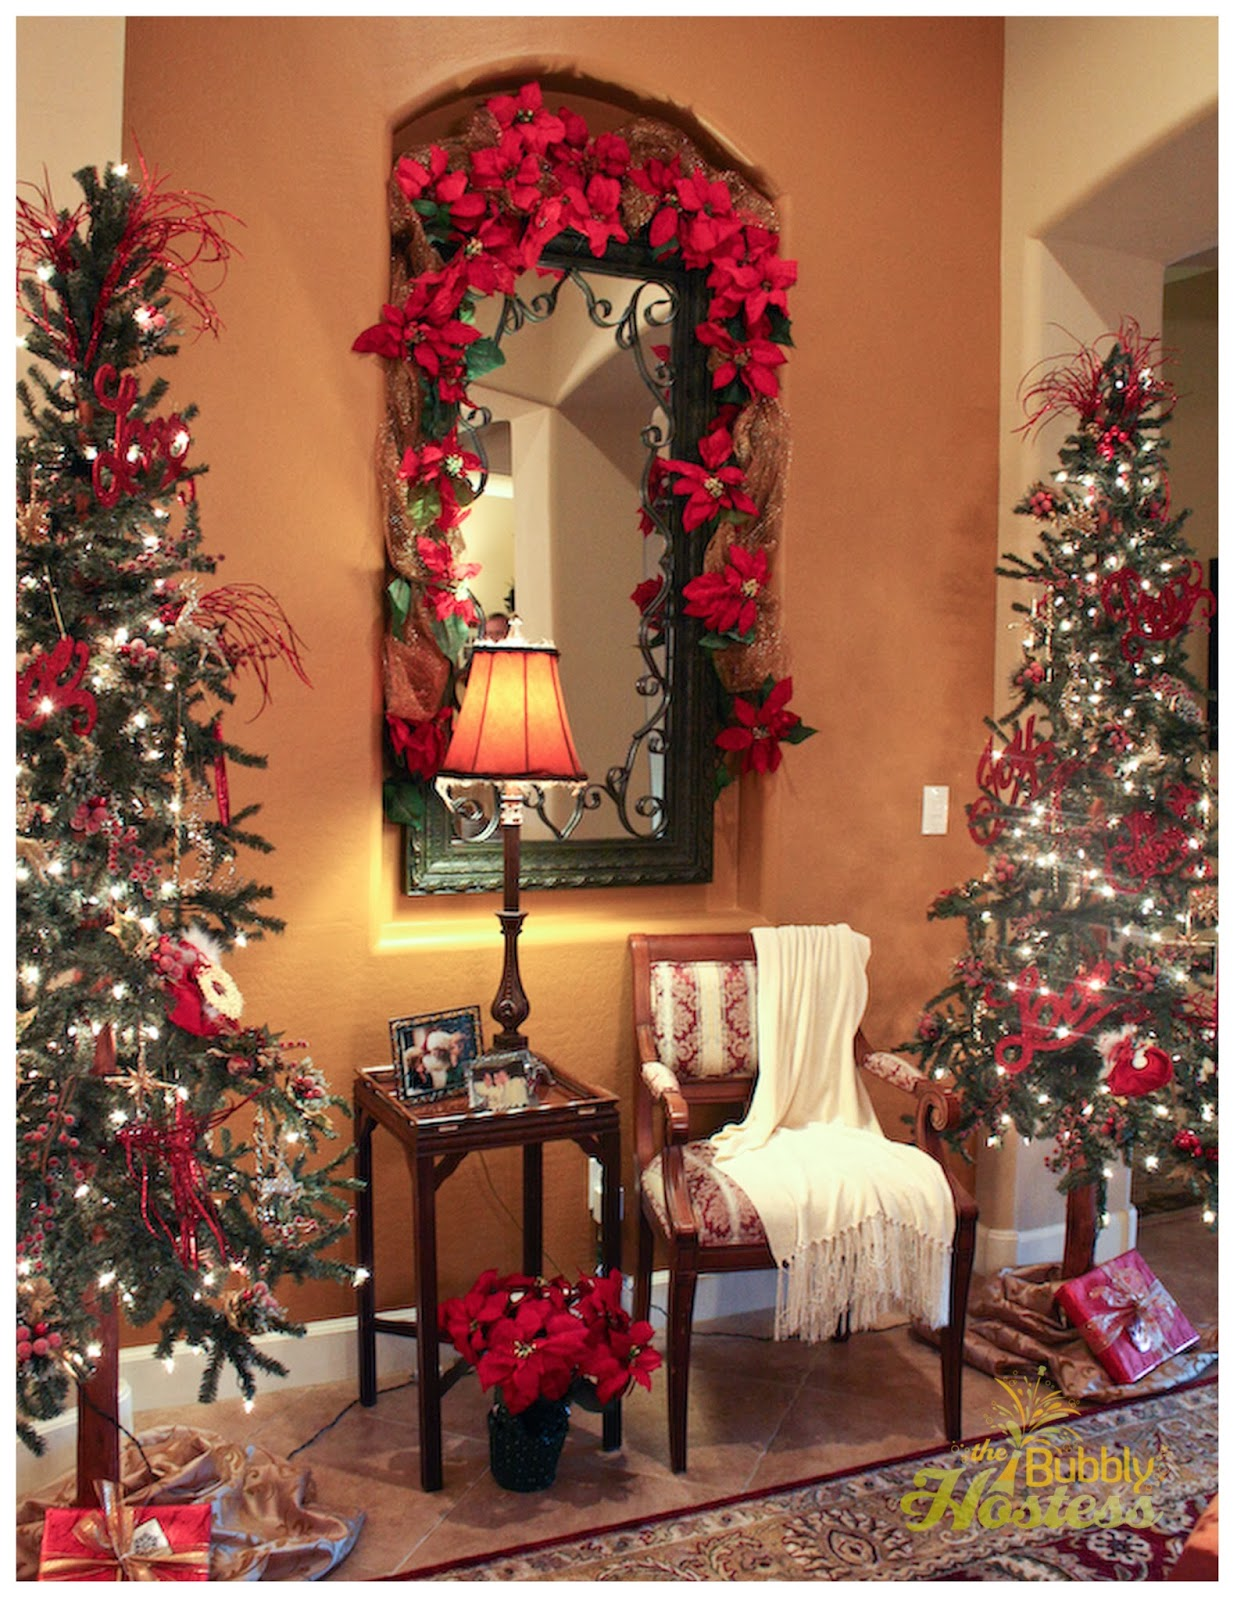 The Bubbly Hostess: Foyer Christmas Decorations